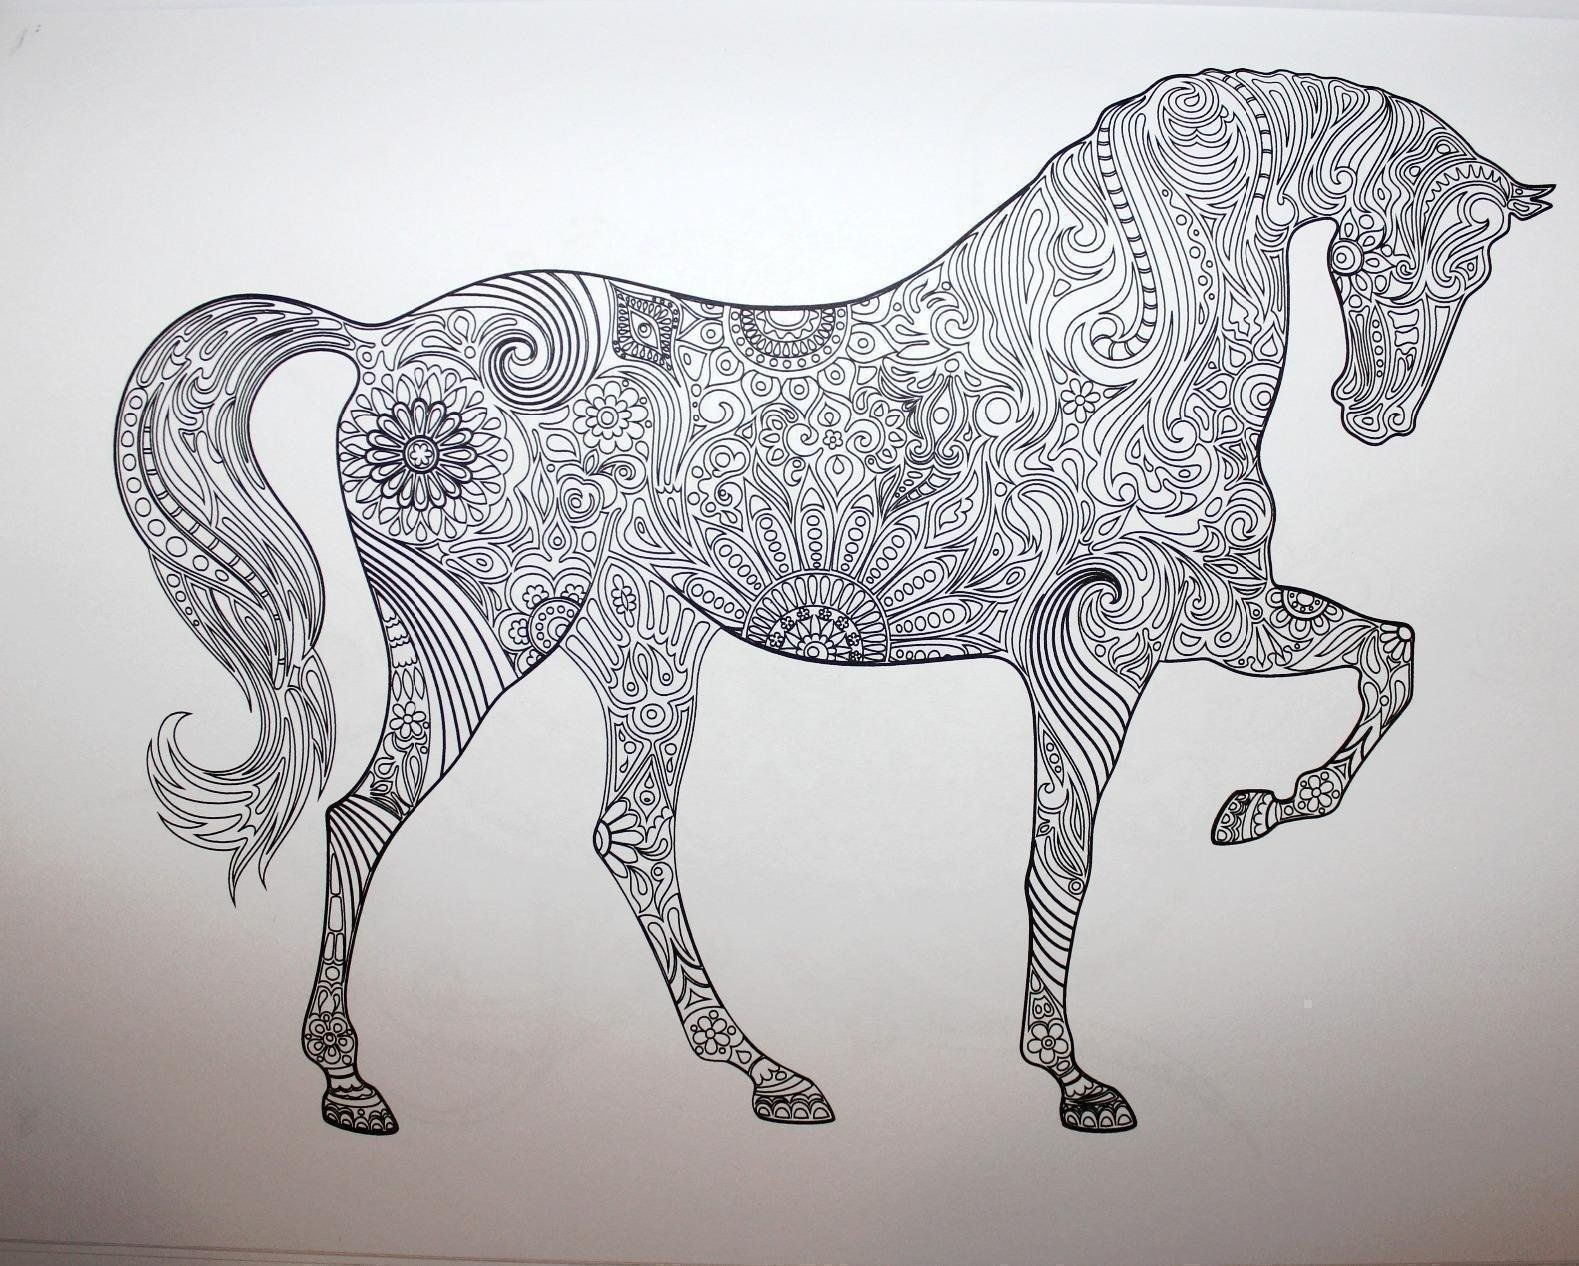 Adult Coloring Book: Stress Relieving Animal Designs: Blue